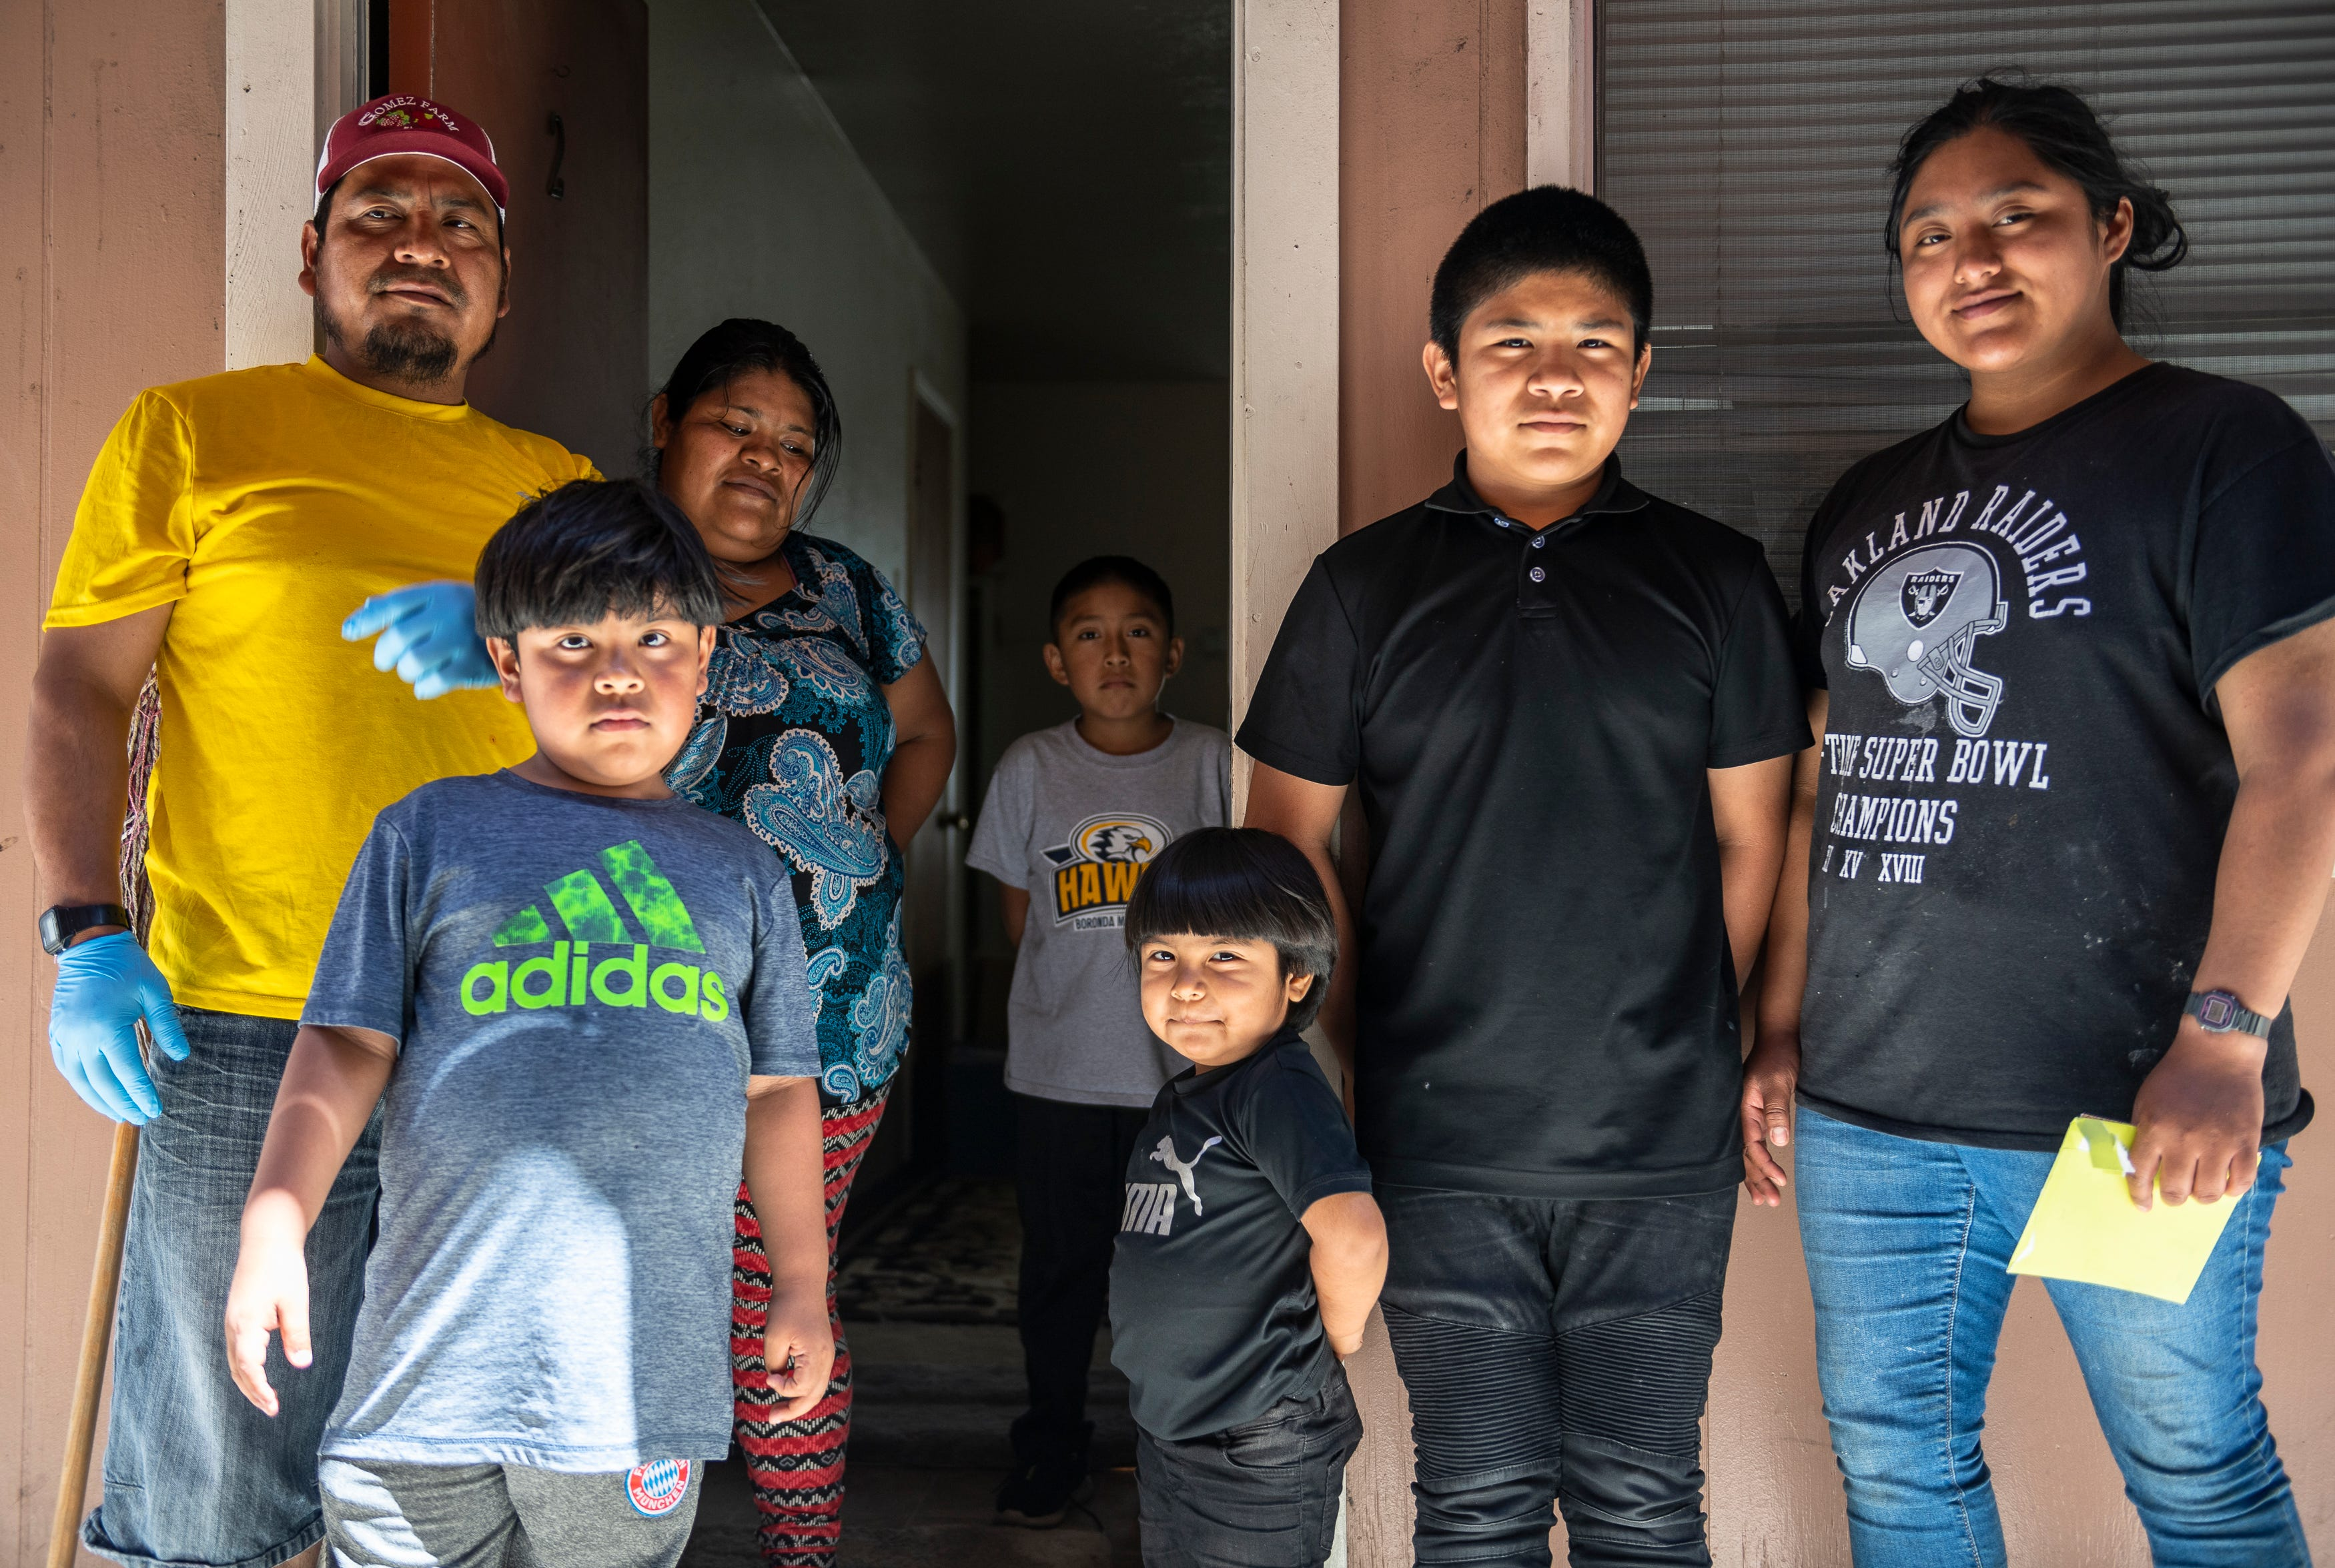 Resi Salvador (right), stands outside of her family's apartment in Salinas, Calif., with her three brothers, family friend, stepmother, and father.